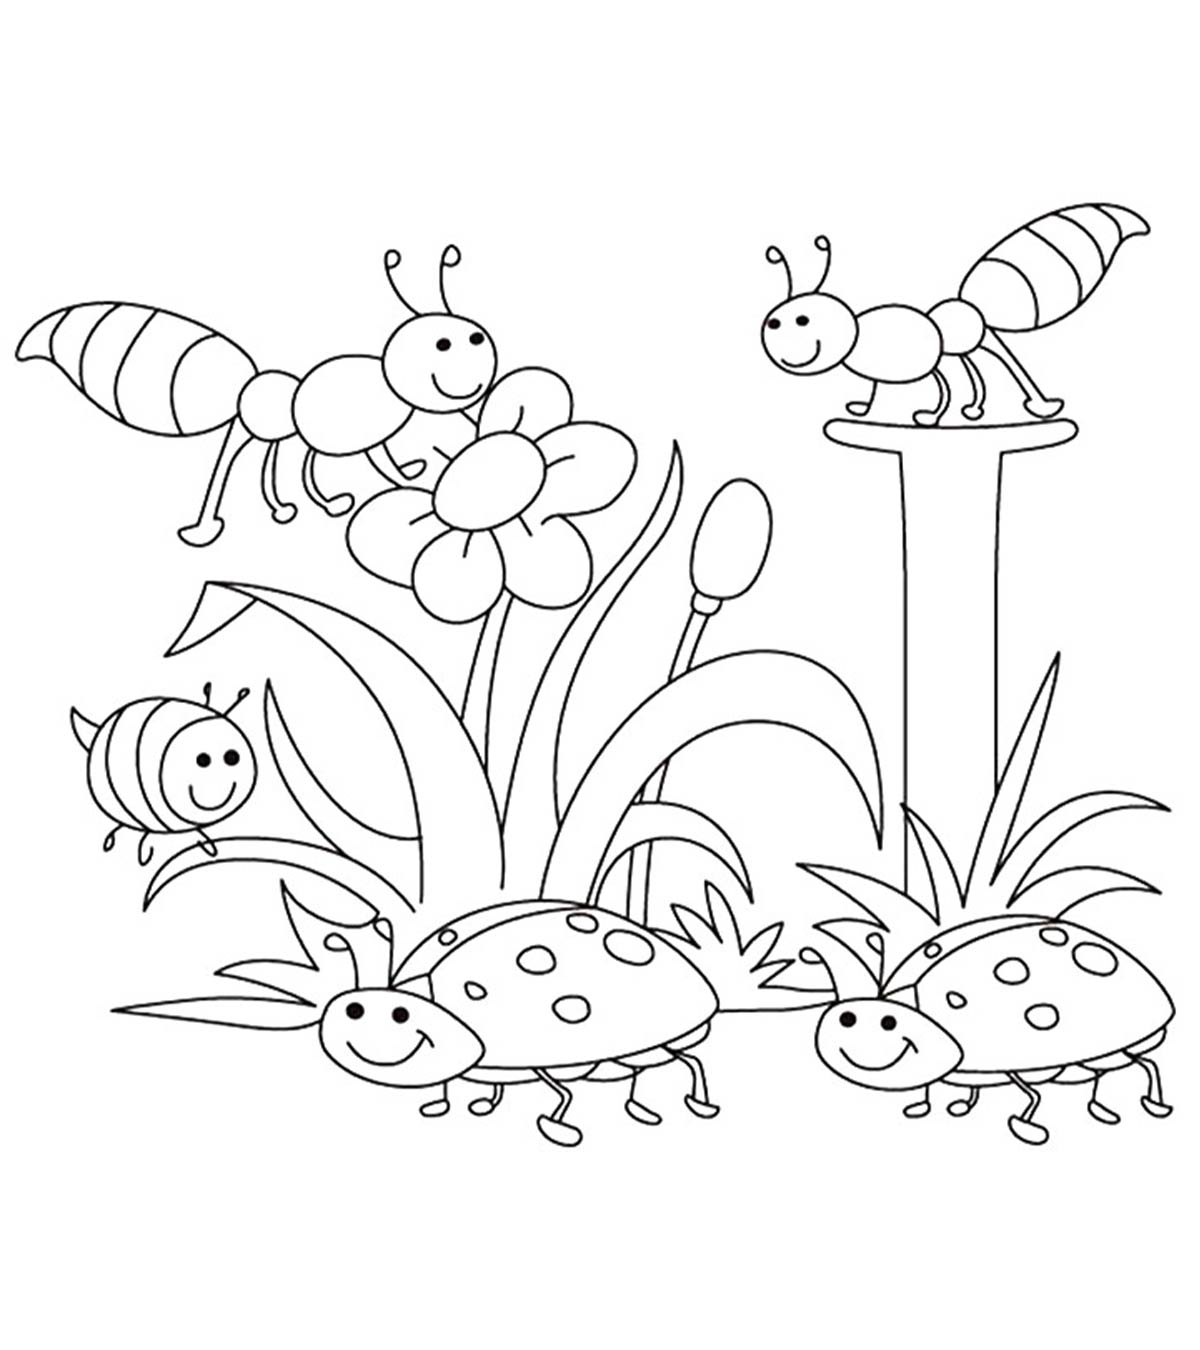 Worksheet For Kindergarten Plant Soil